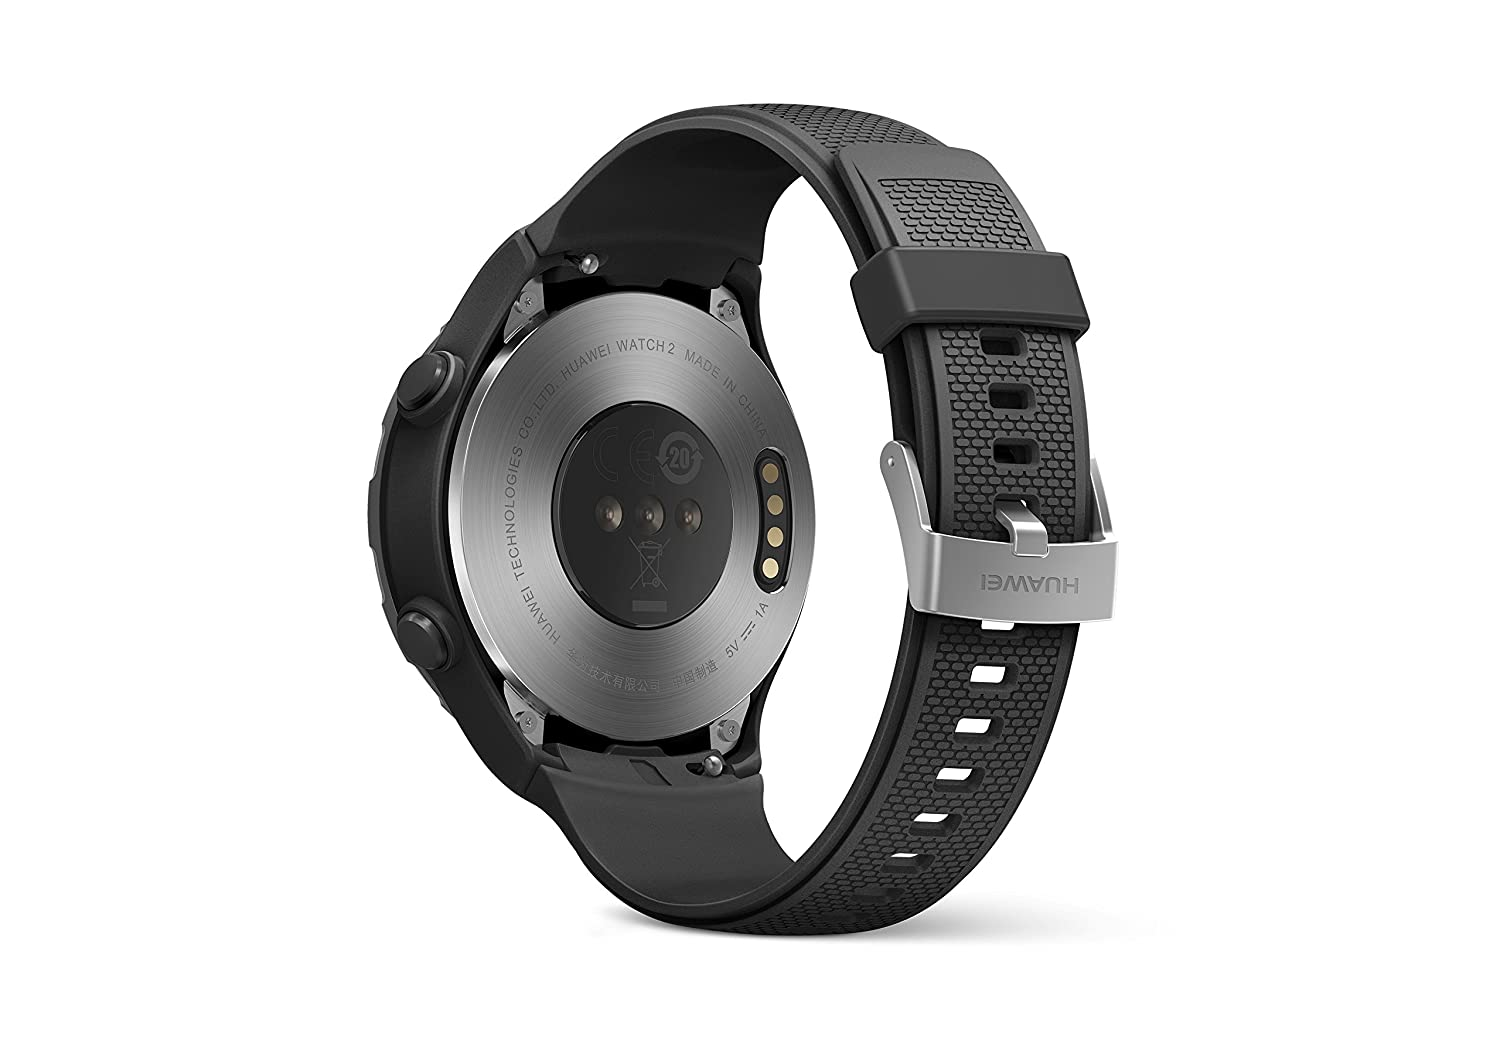 Huawei Smartwatch for Universal/Smartphones - Carbon